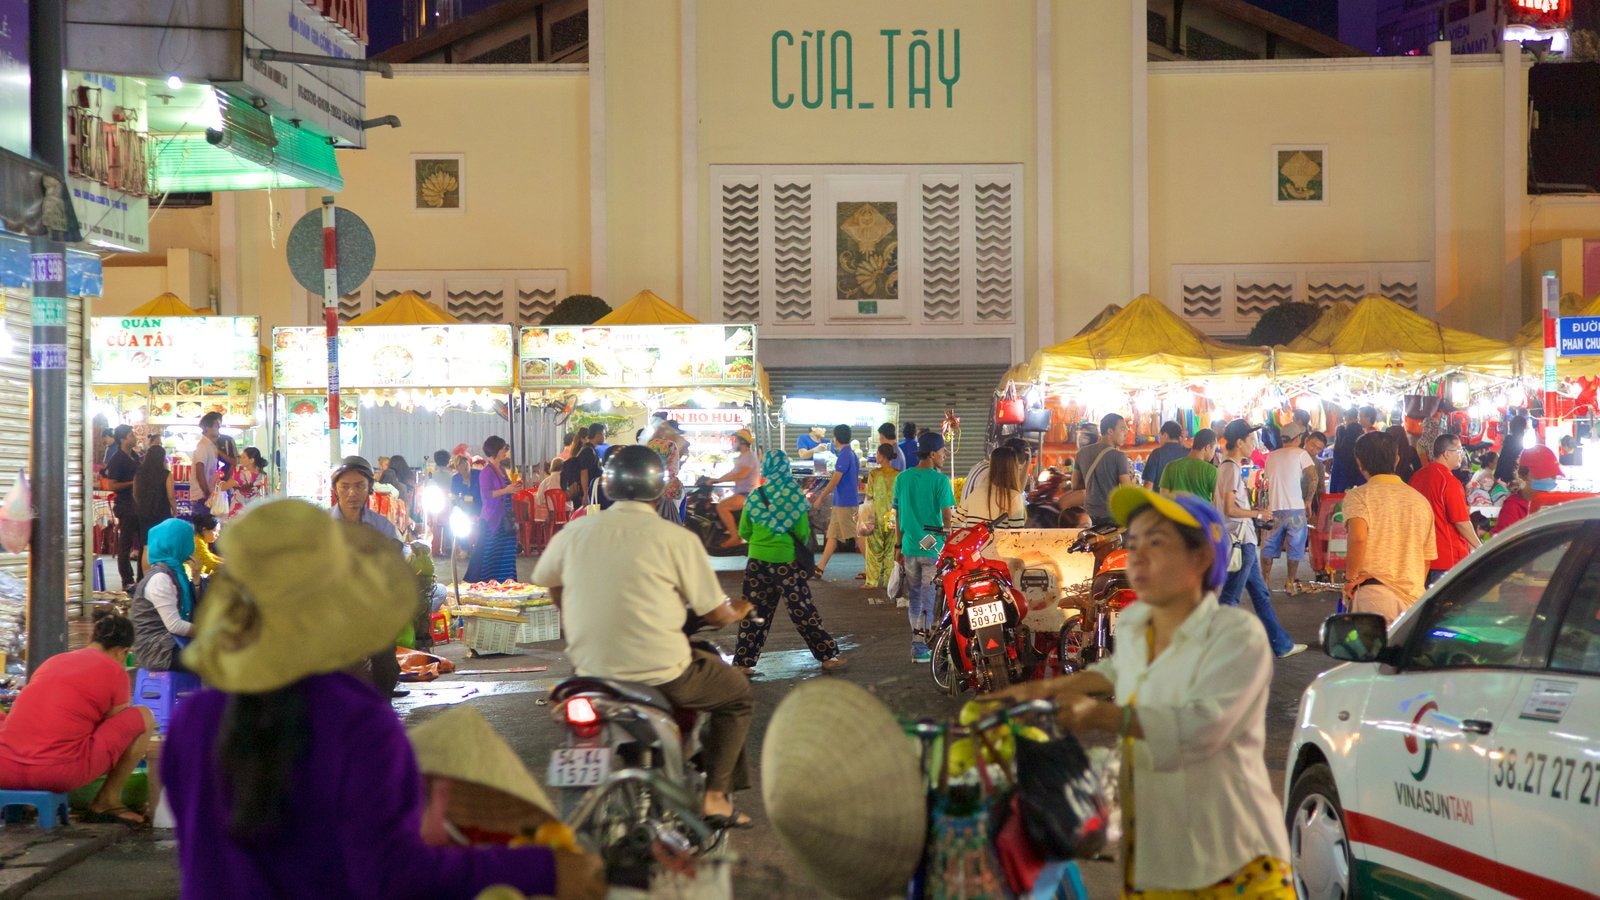 Ben Thanh Market which includes markets, shopping and signage